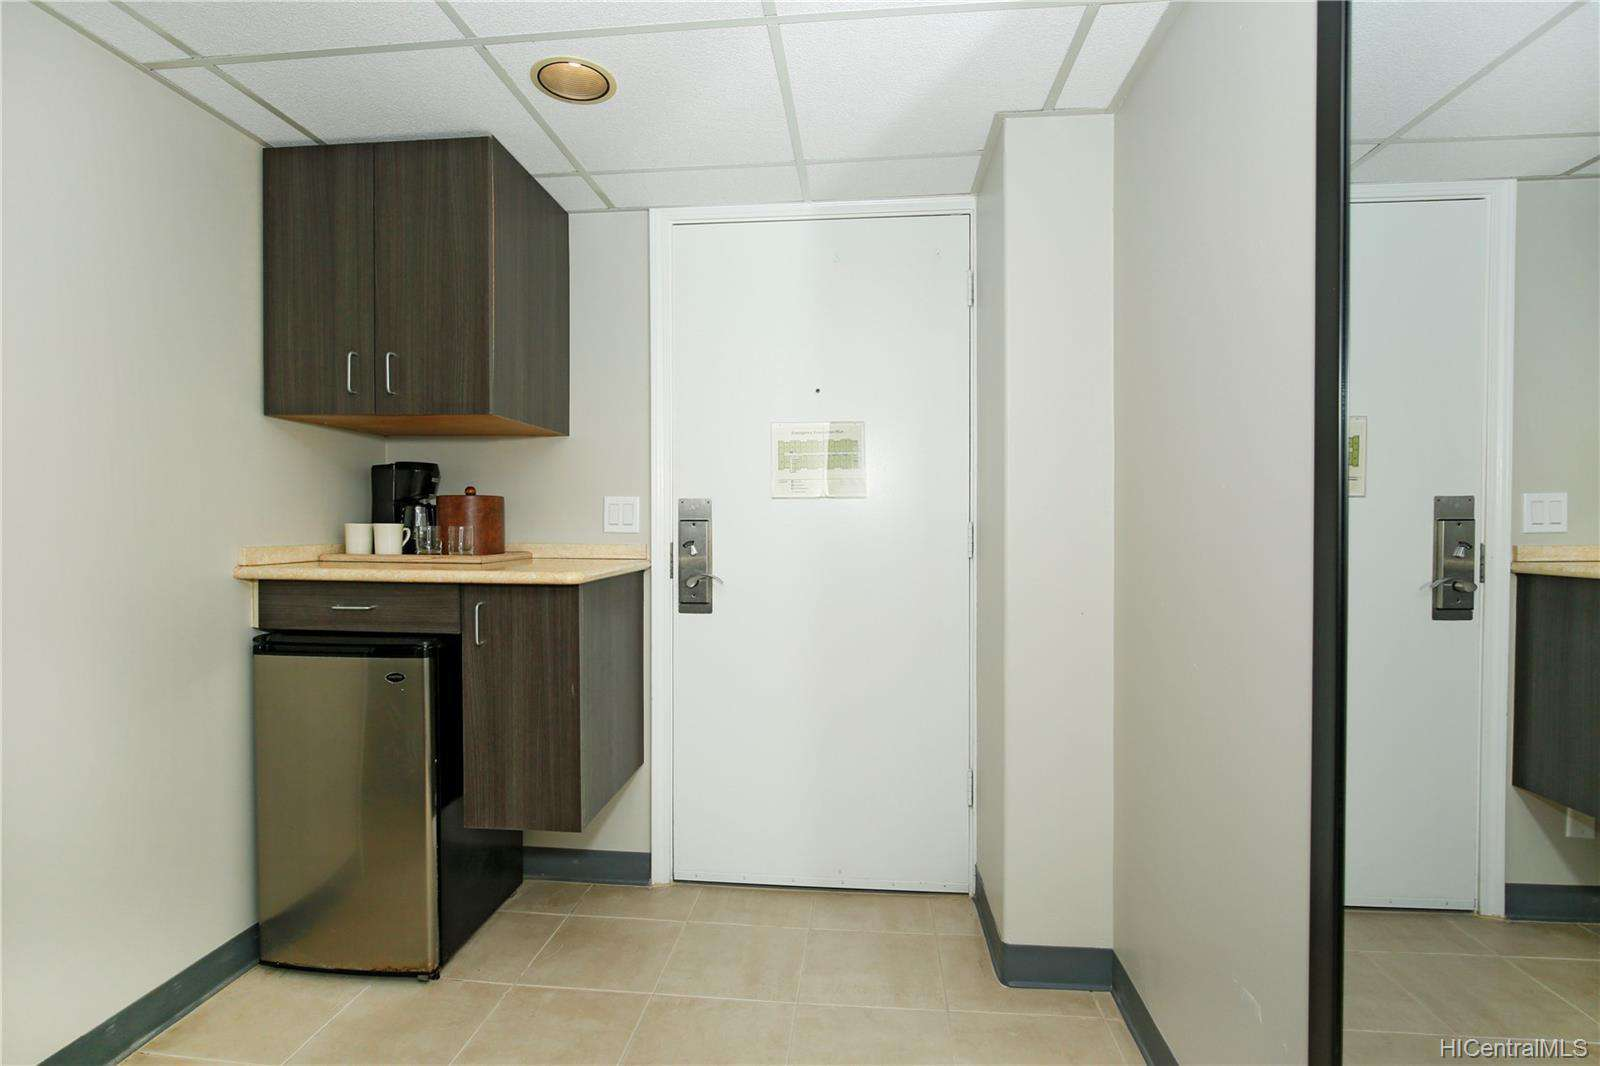 Mini Fridge, Coffee Maker, 2 burner stove and all the basics for in-room convenience!